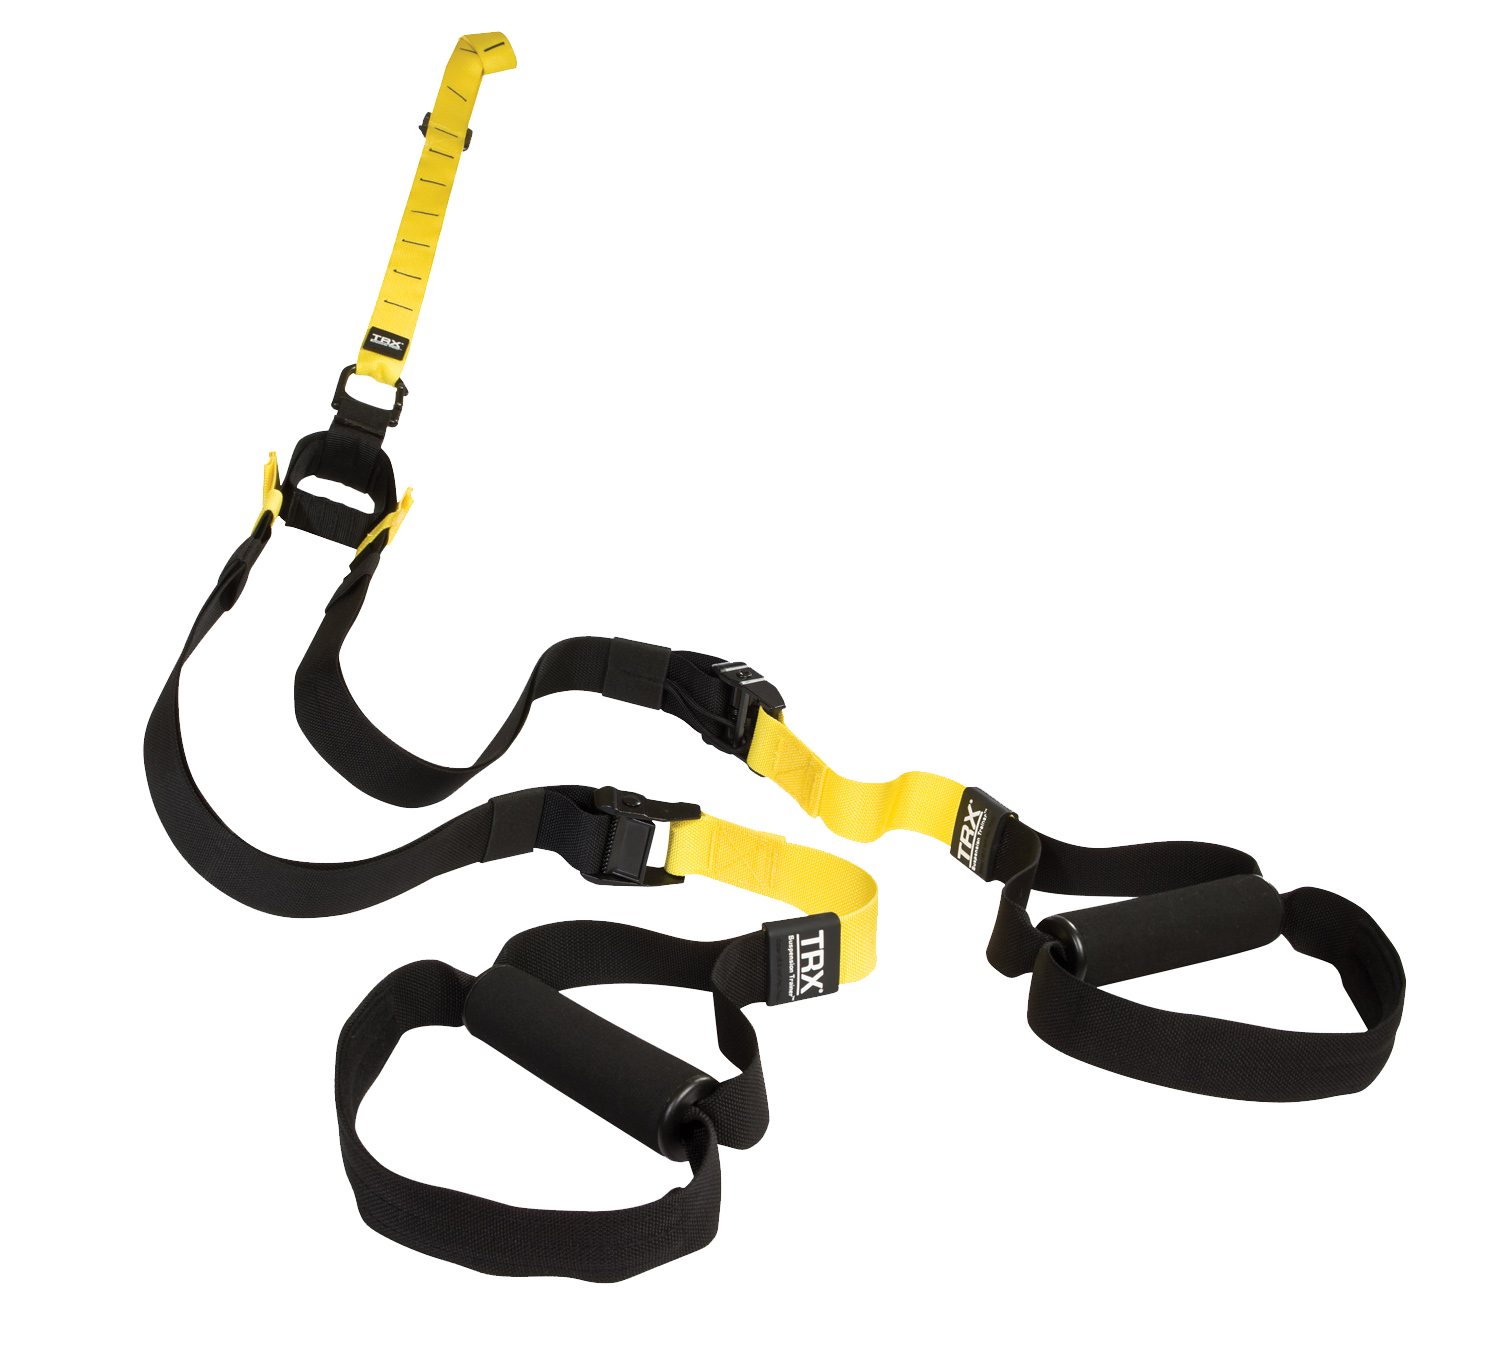 Upgrade These 5 Exercises With The Trx Suspension Trainer